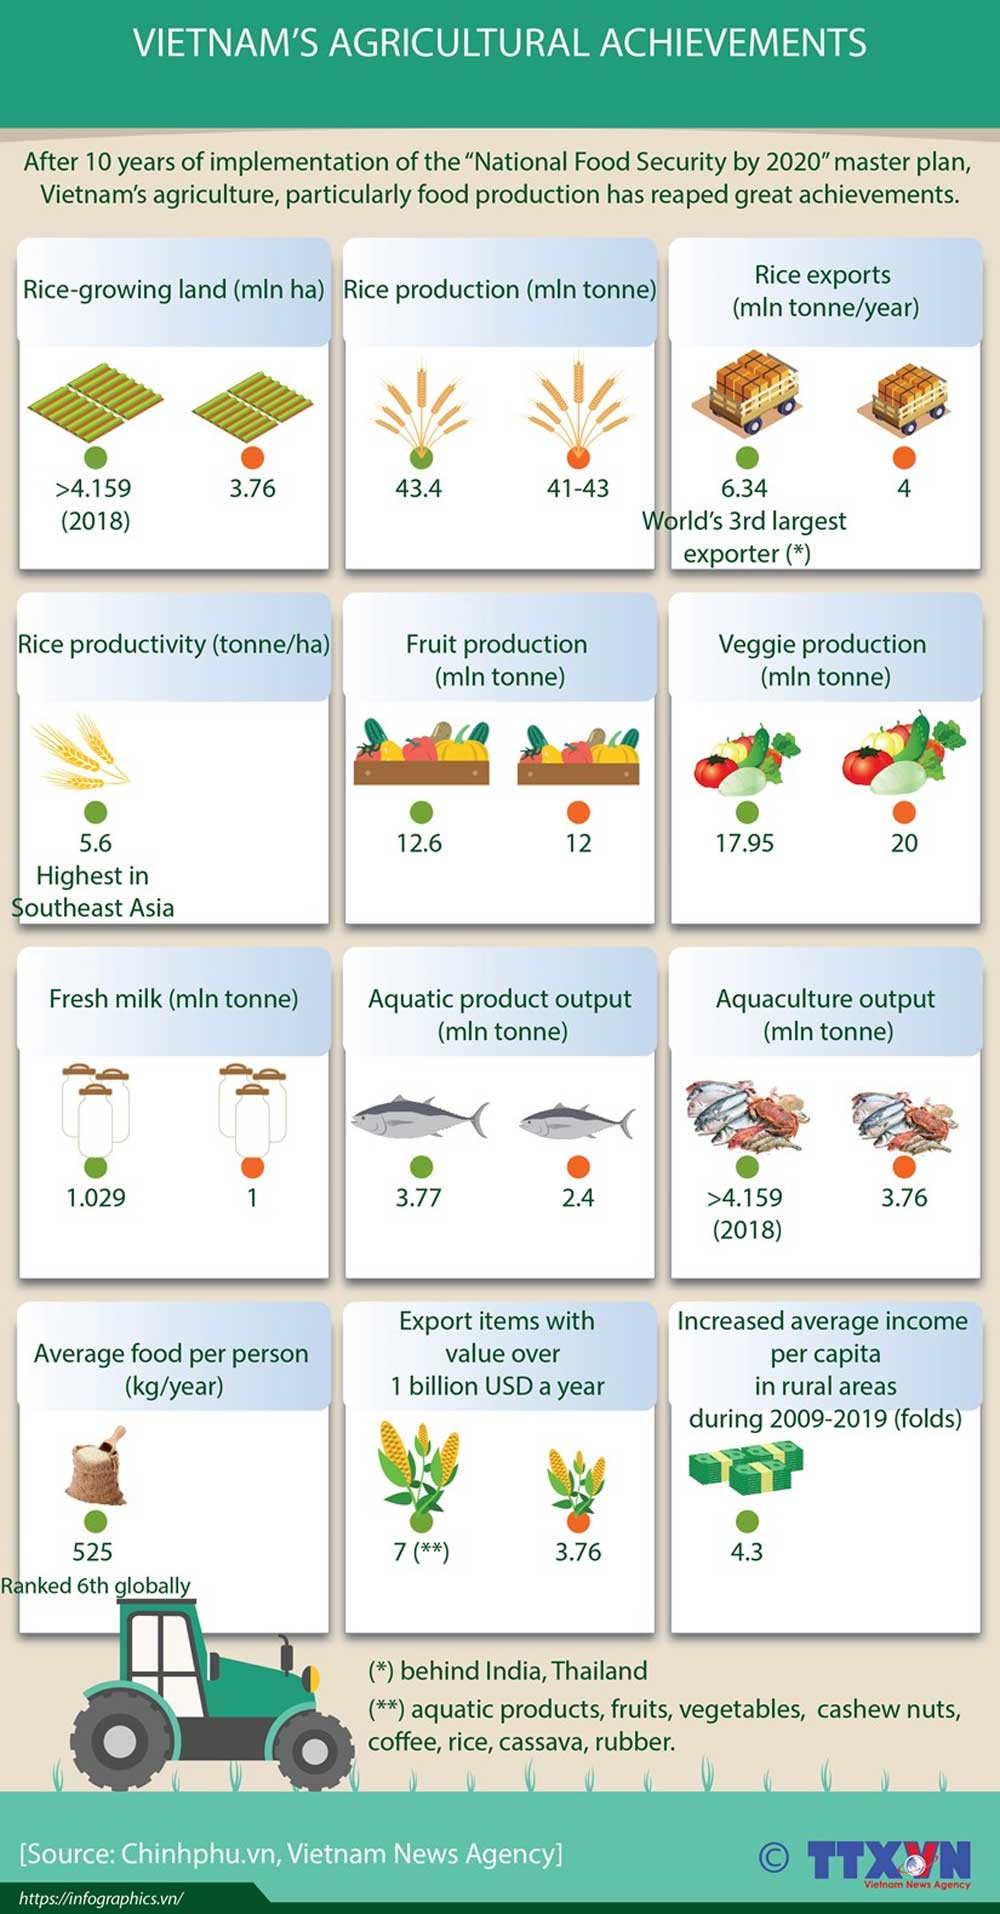 Vietnam, agricultural achievements, National Food Security,  master plan, food production